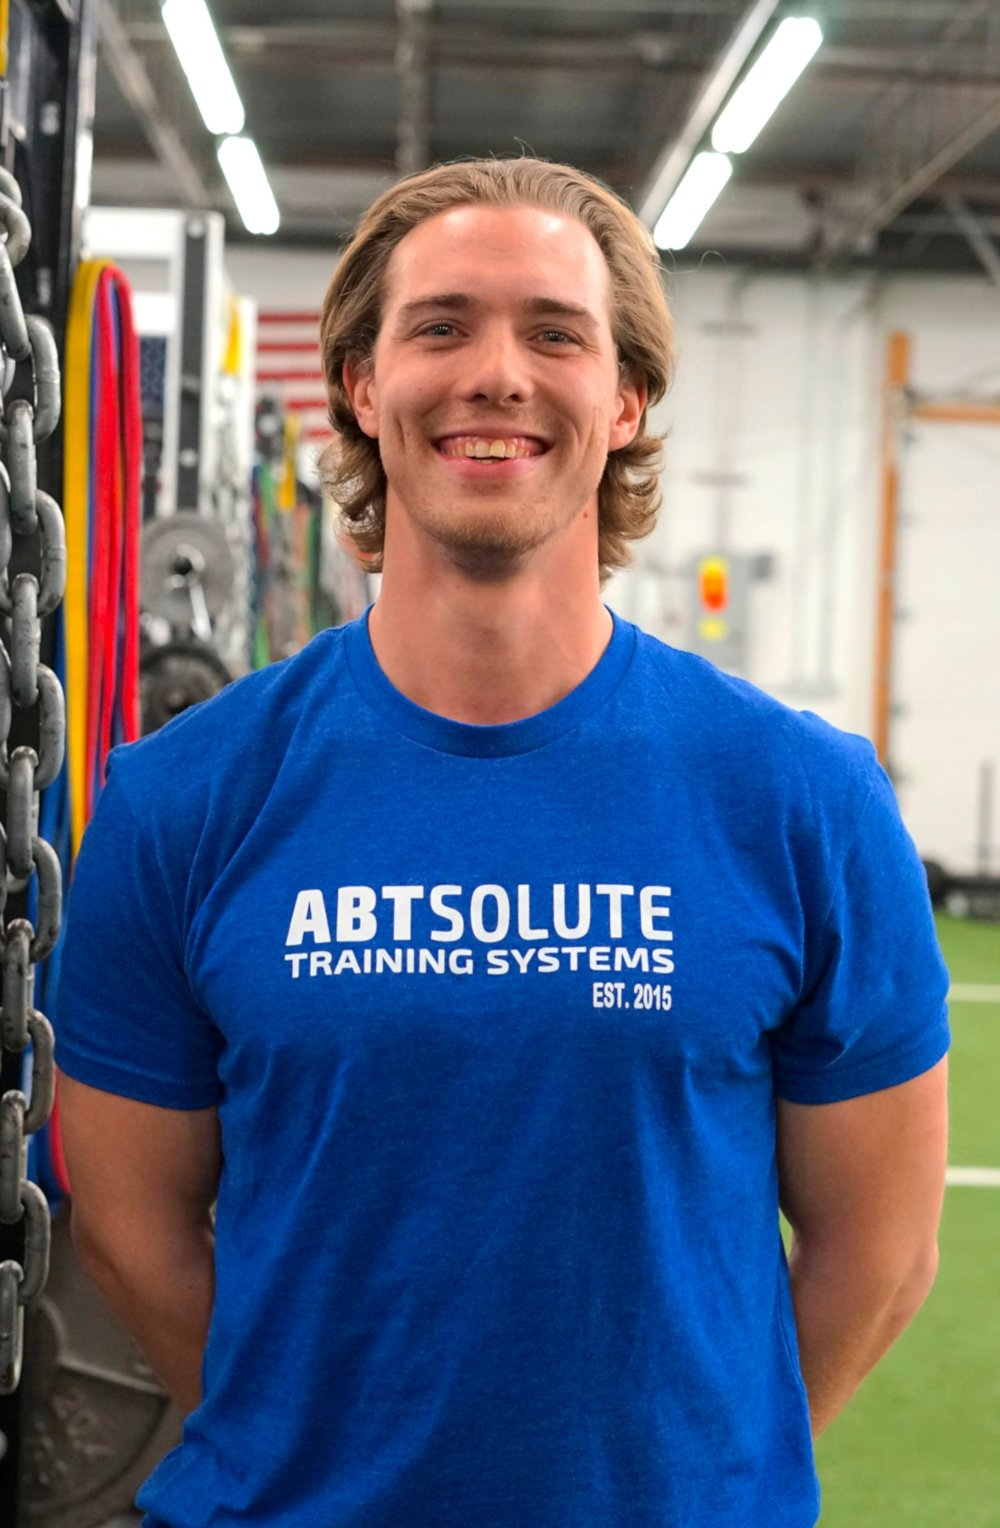 Danny O'Connell - Sports Performance Specialist/TrainerDanny has been involved in the sports performance field for 5 years. Before joining the ABTsolute team, he was the facility director for Sports performance  at Bluestreak sports training in stamford ct.While at bluestreak sports training, danny worked with hundreds of athletes, but specialized in hockey, lacrosse, football and golf training. His skill set makes Danny a specialist in speed & Agility, strength & conditioning and injury prevention.